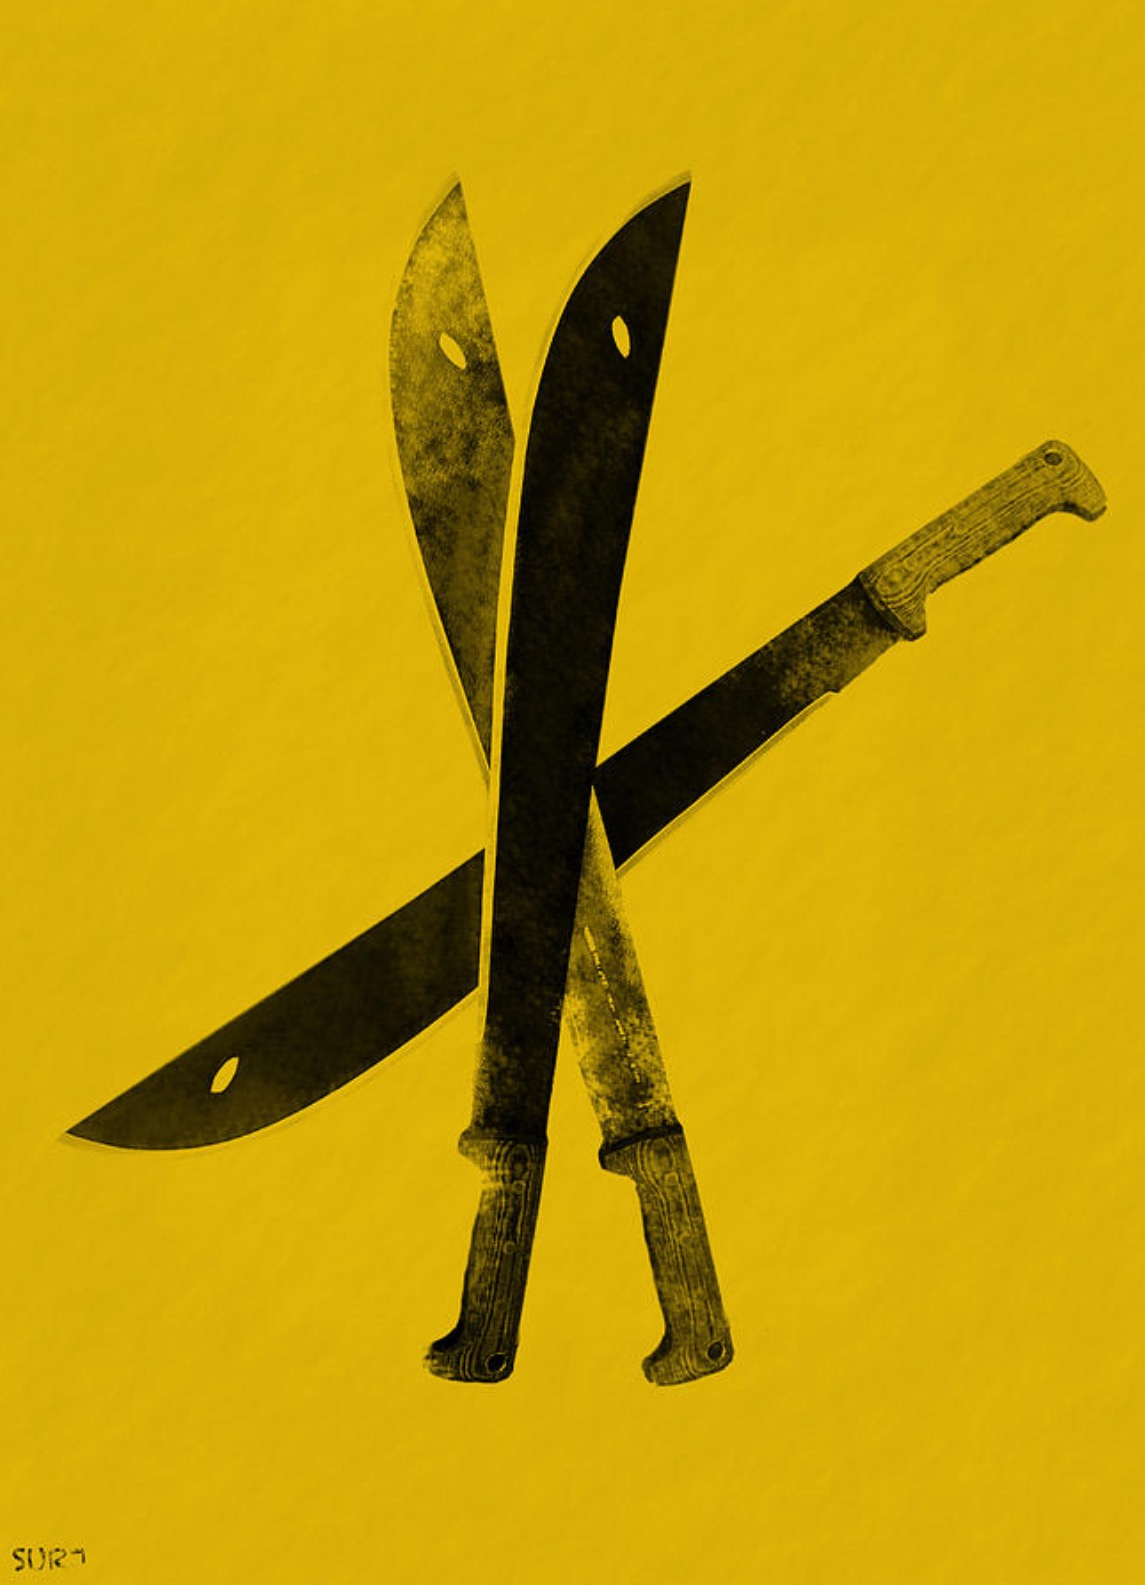 warhol, warhol knives, pop art, art, andy warhol, homage to warhol